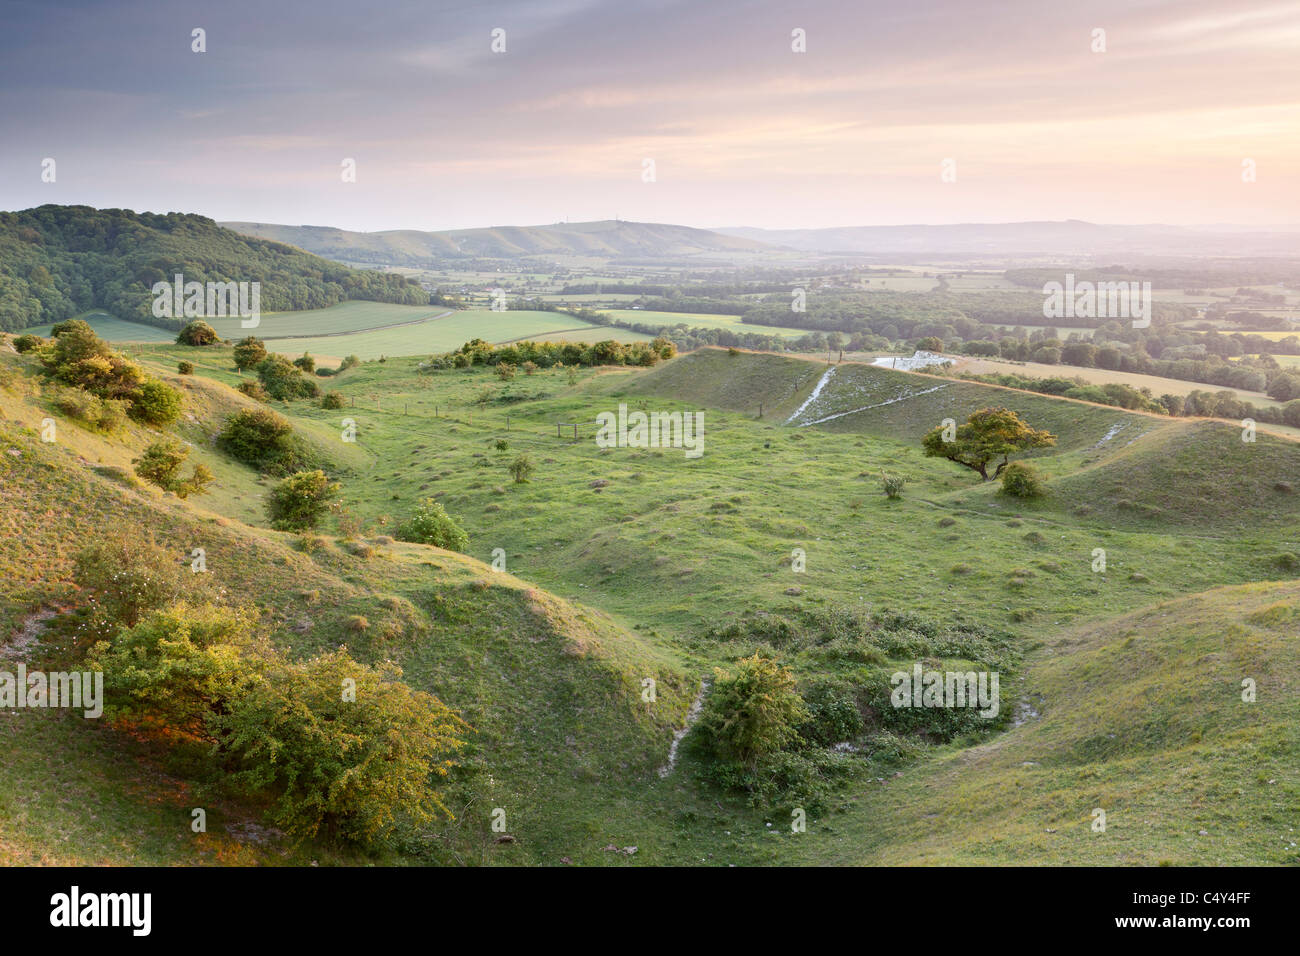 The view across the Low Weald, South Downs National Park, West Sussex, England, UK - Stock Image